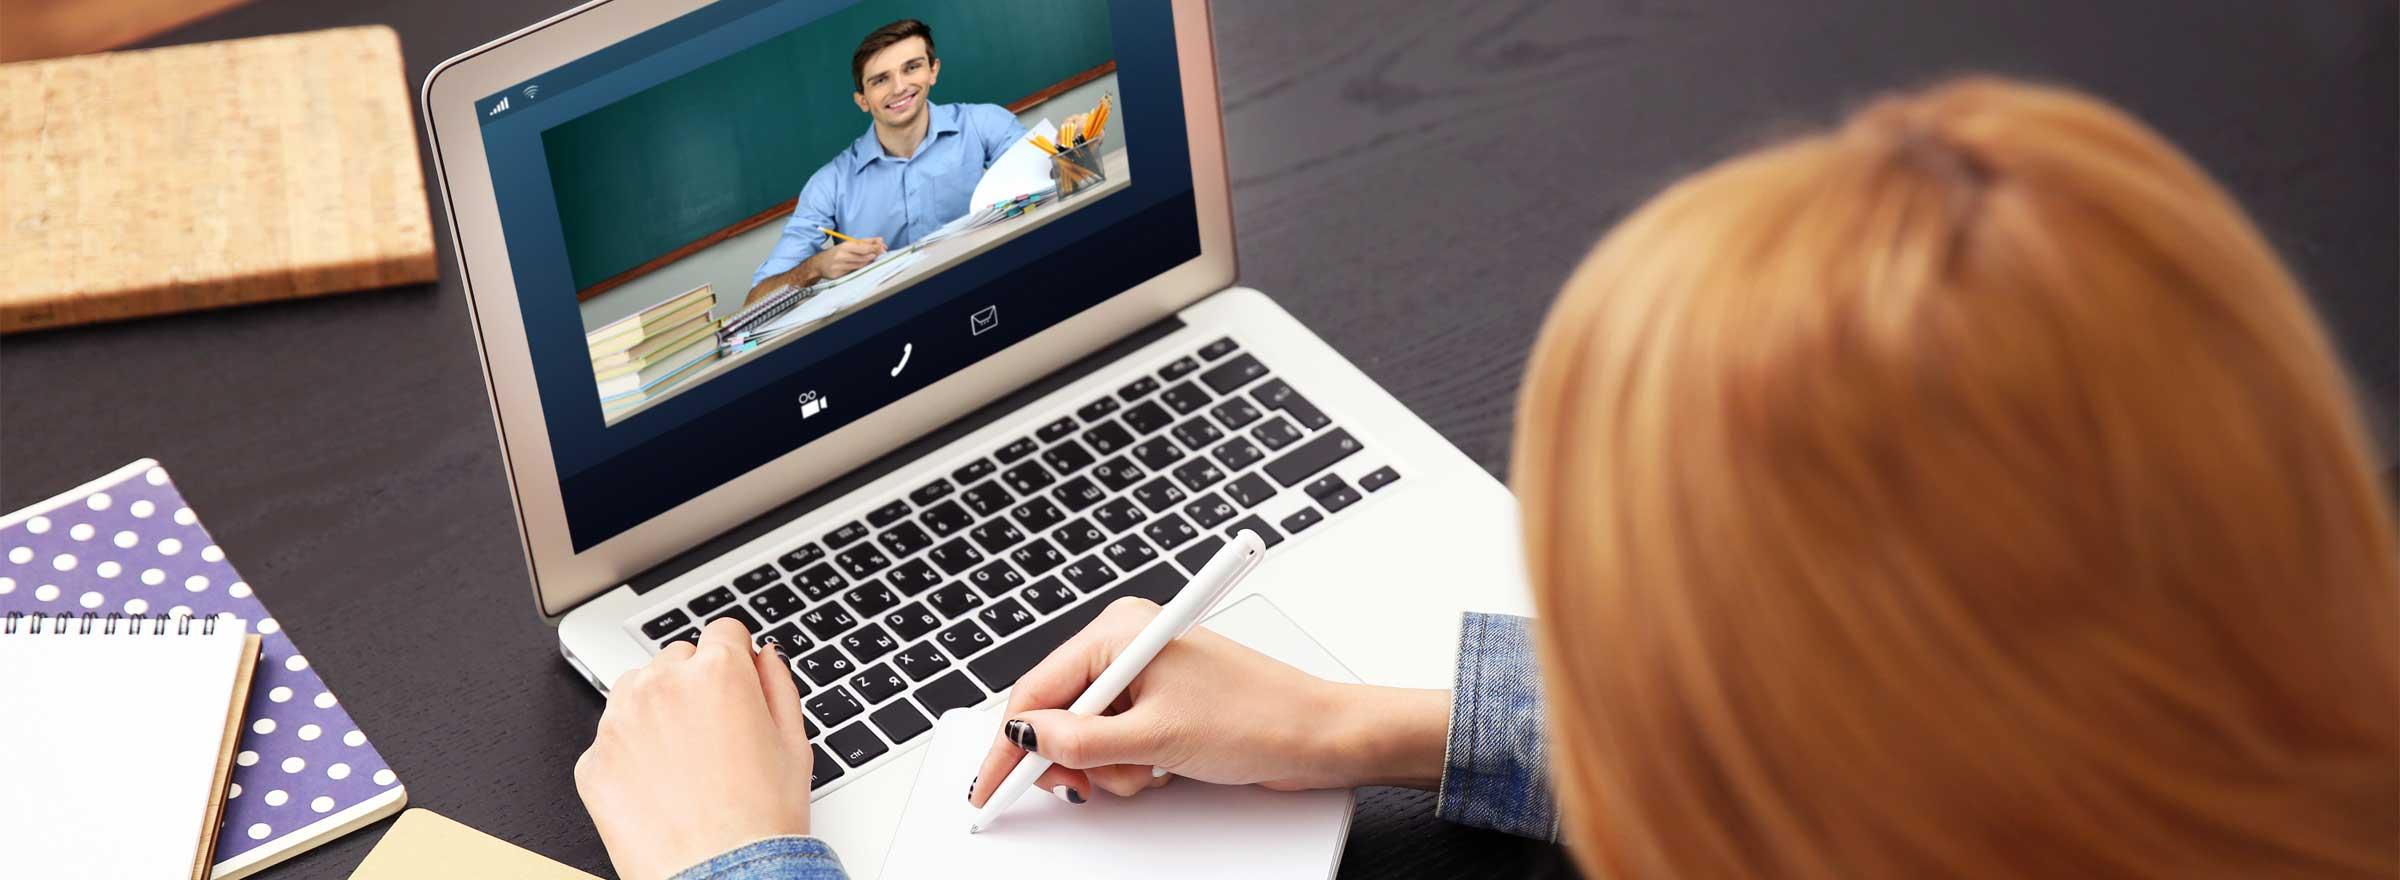 woman in a video conference with a man